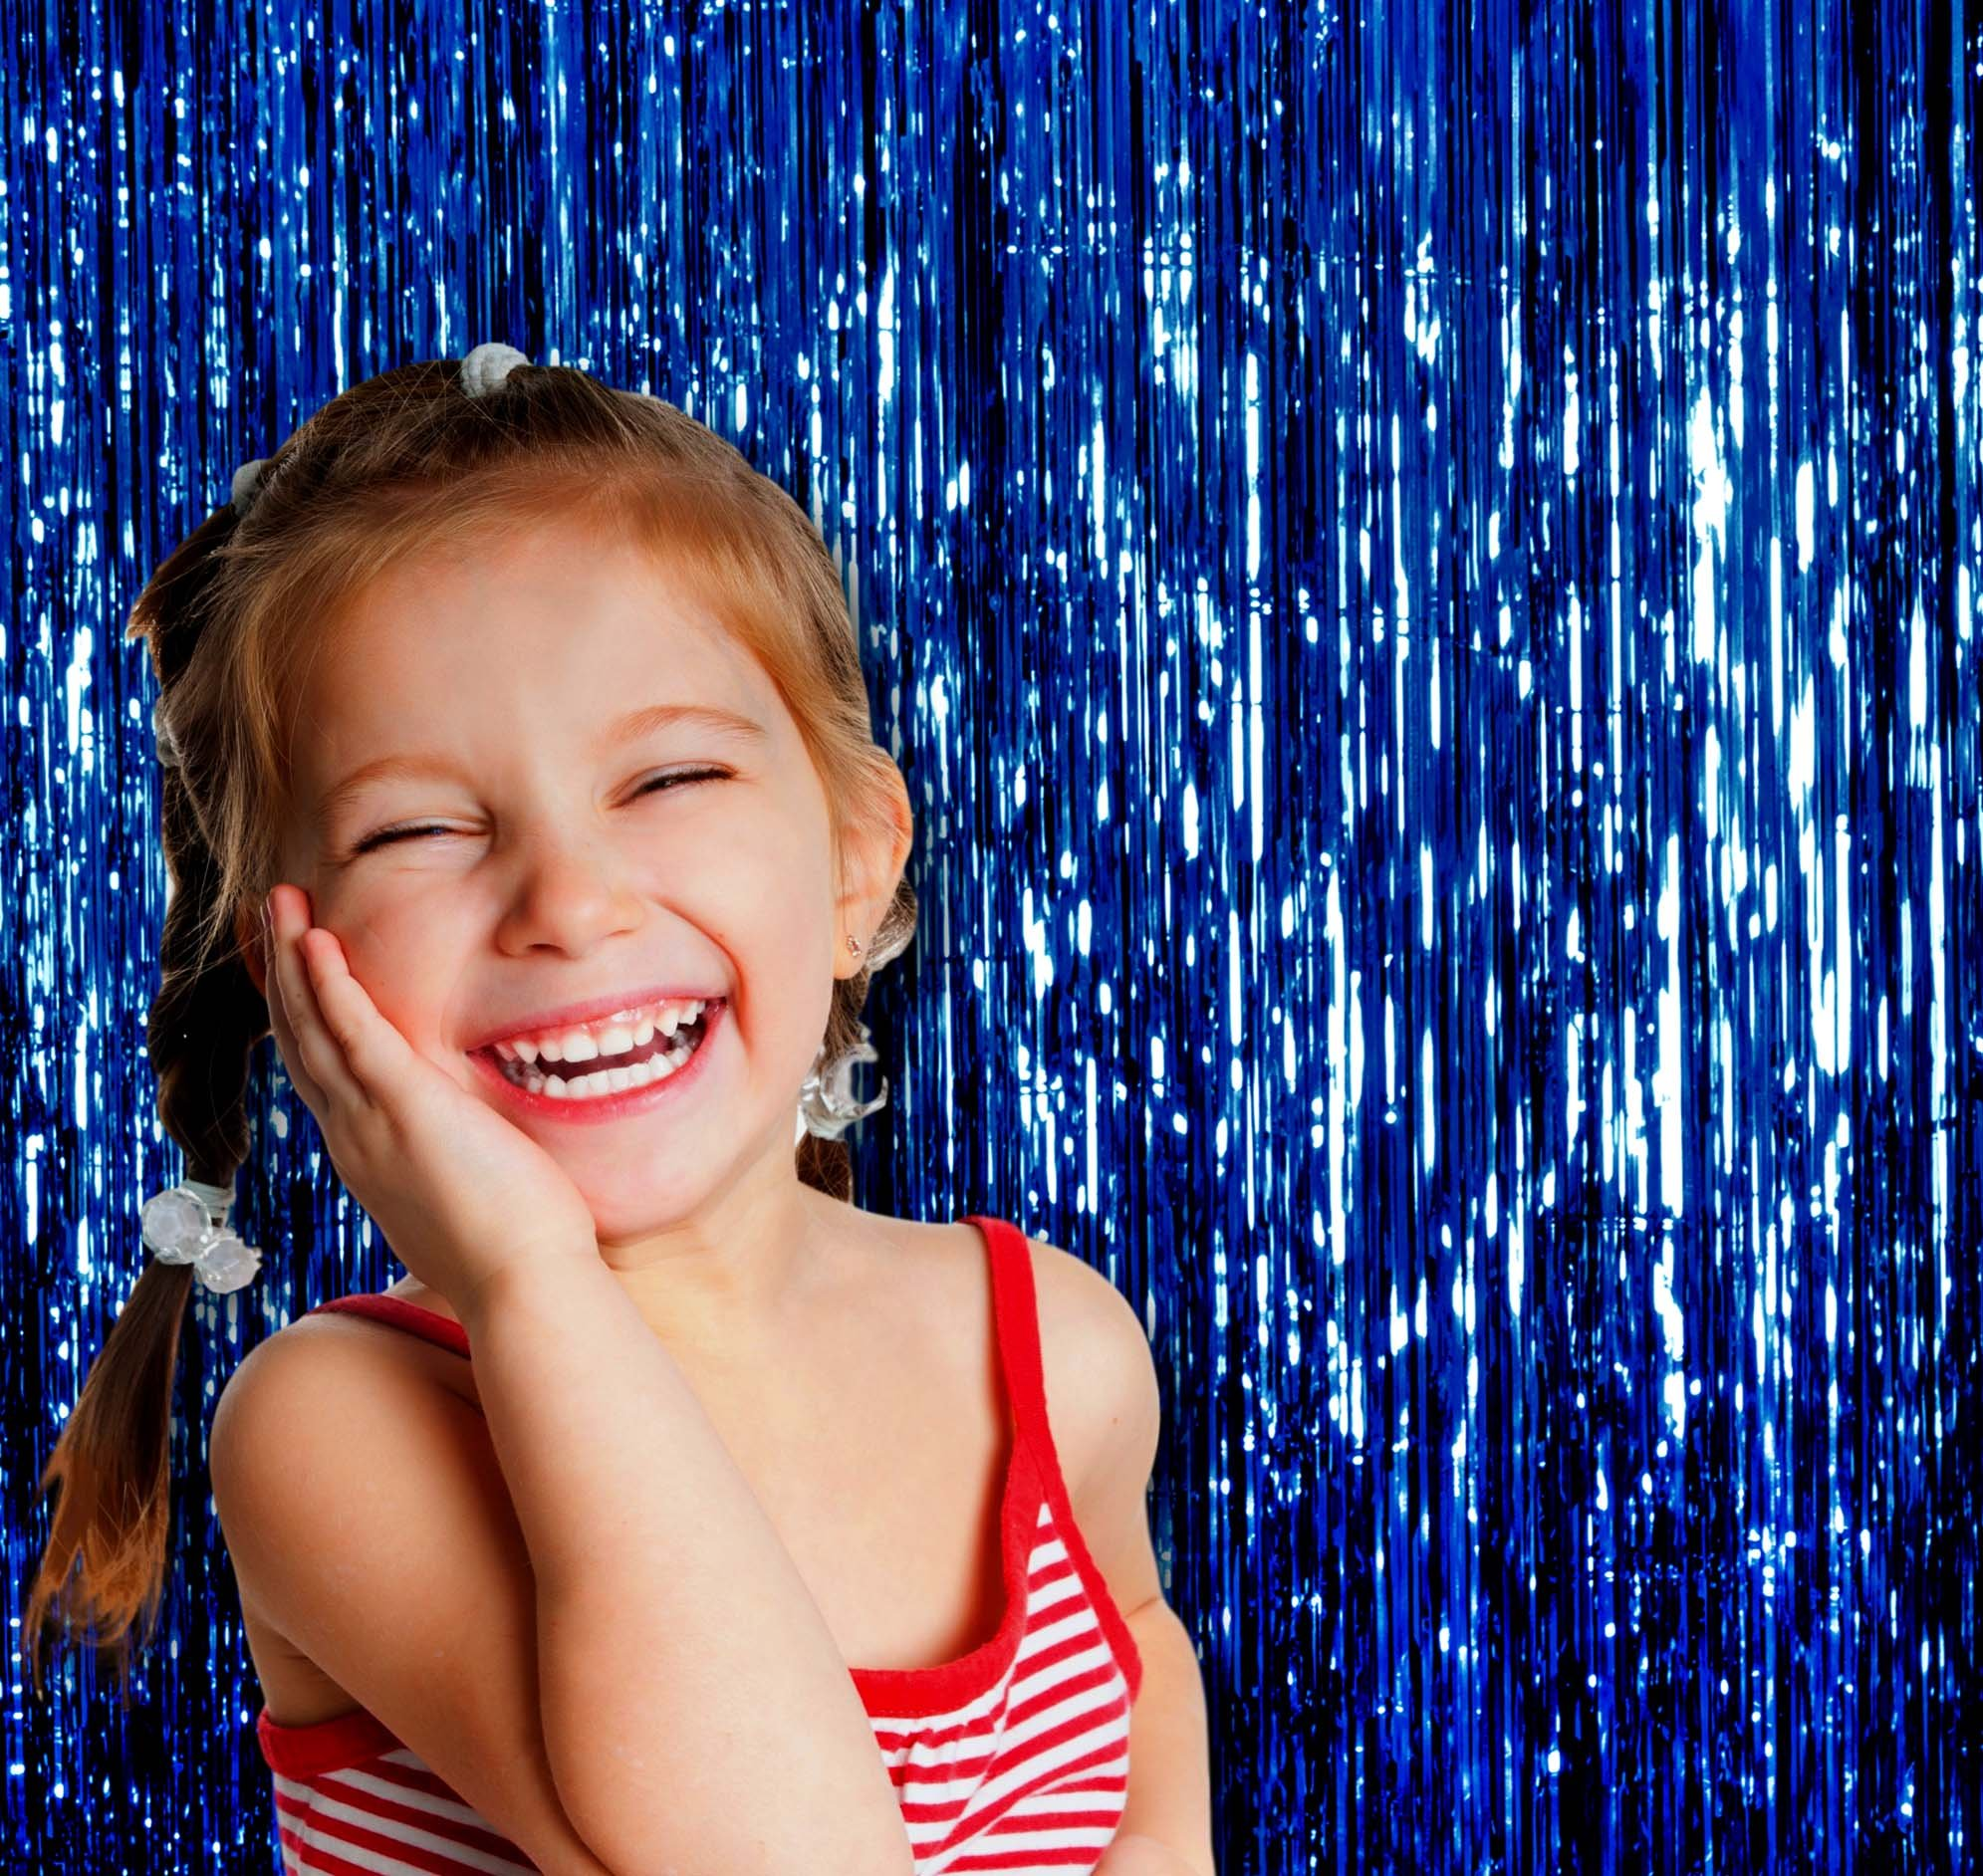 Blue Foil Fringe Curtain Party Decorations | 3 x 8 Feet, Pack of 3 | Metallic Tinsel Door and Window Curtains for Under the Ocean Sea Theme Decoration by Treasures Gifted (Image #4)